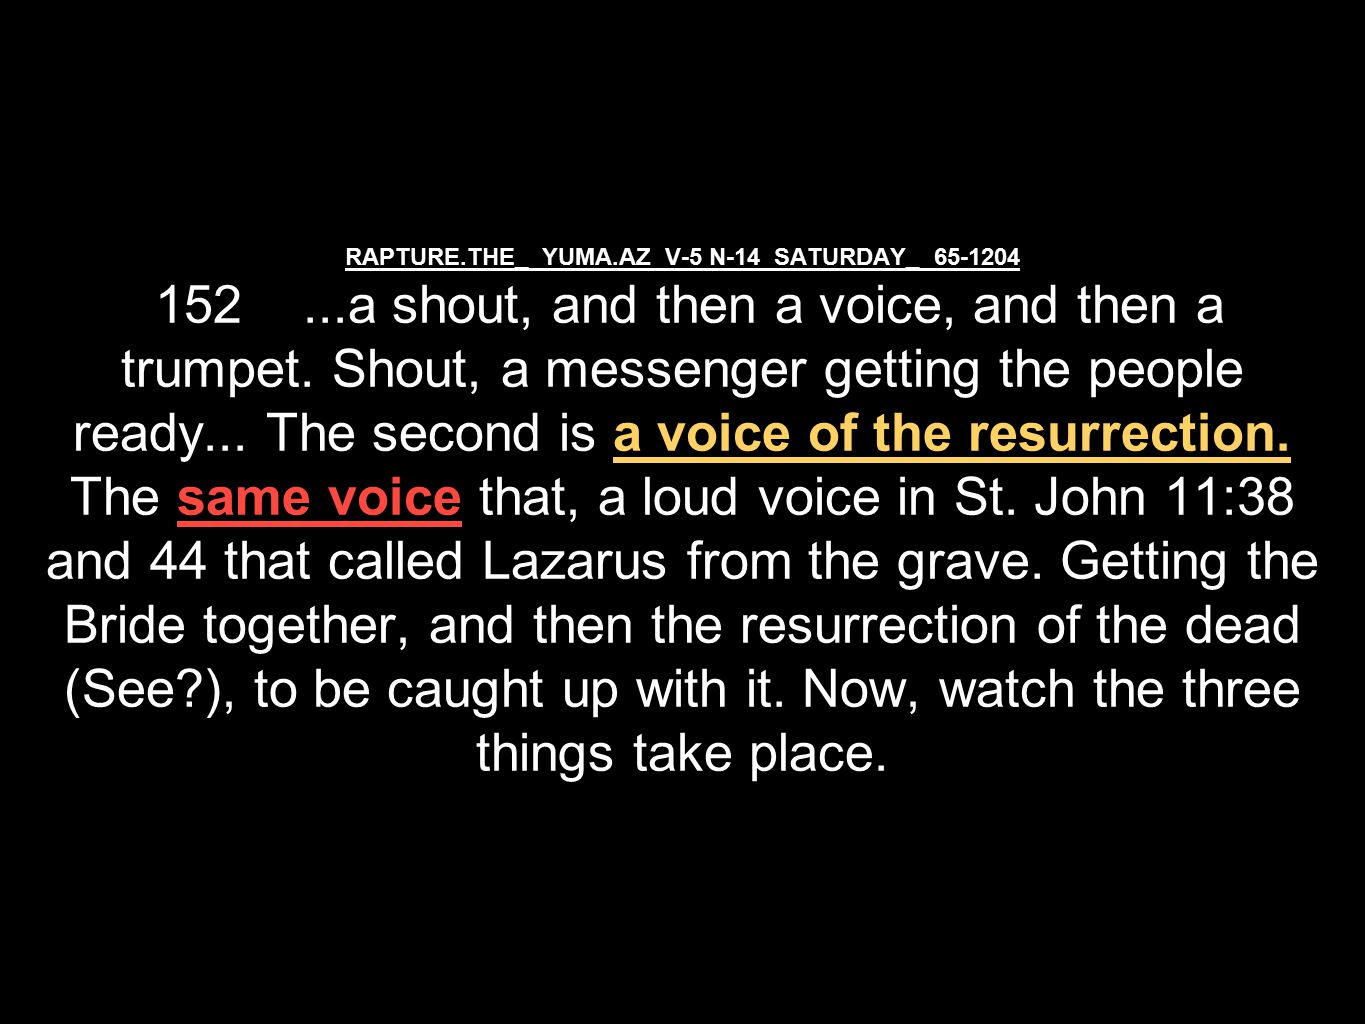 RAPTURE.THE_ YUMA.AZ V-5 N-14 SATURDAY_ 65-1204 152...a shout, and then a voice, and then a trumpet.